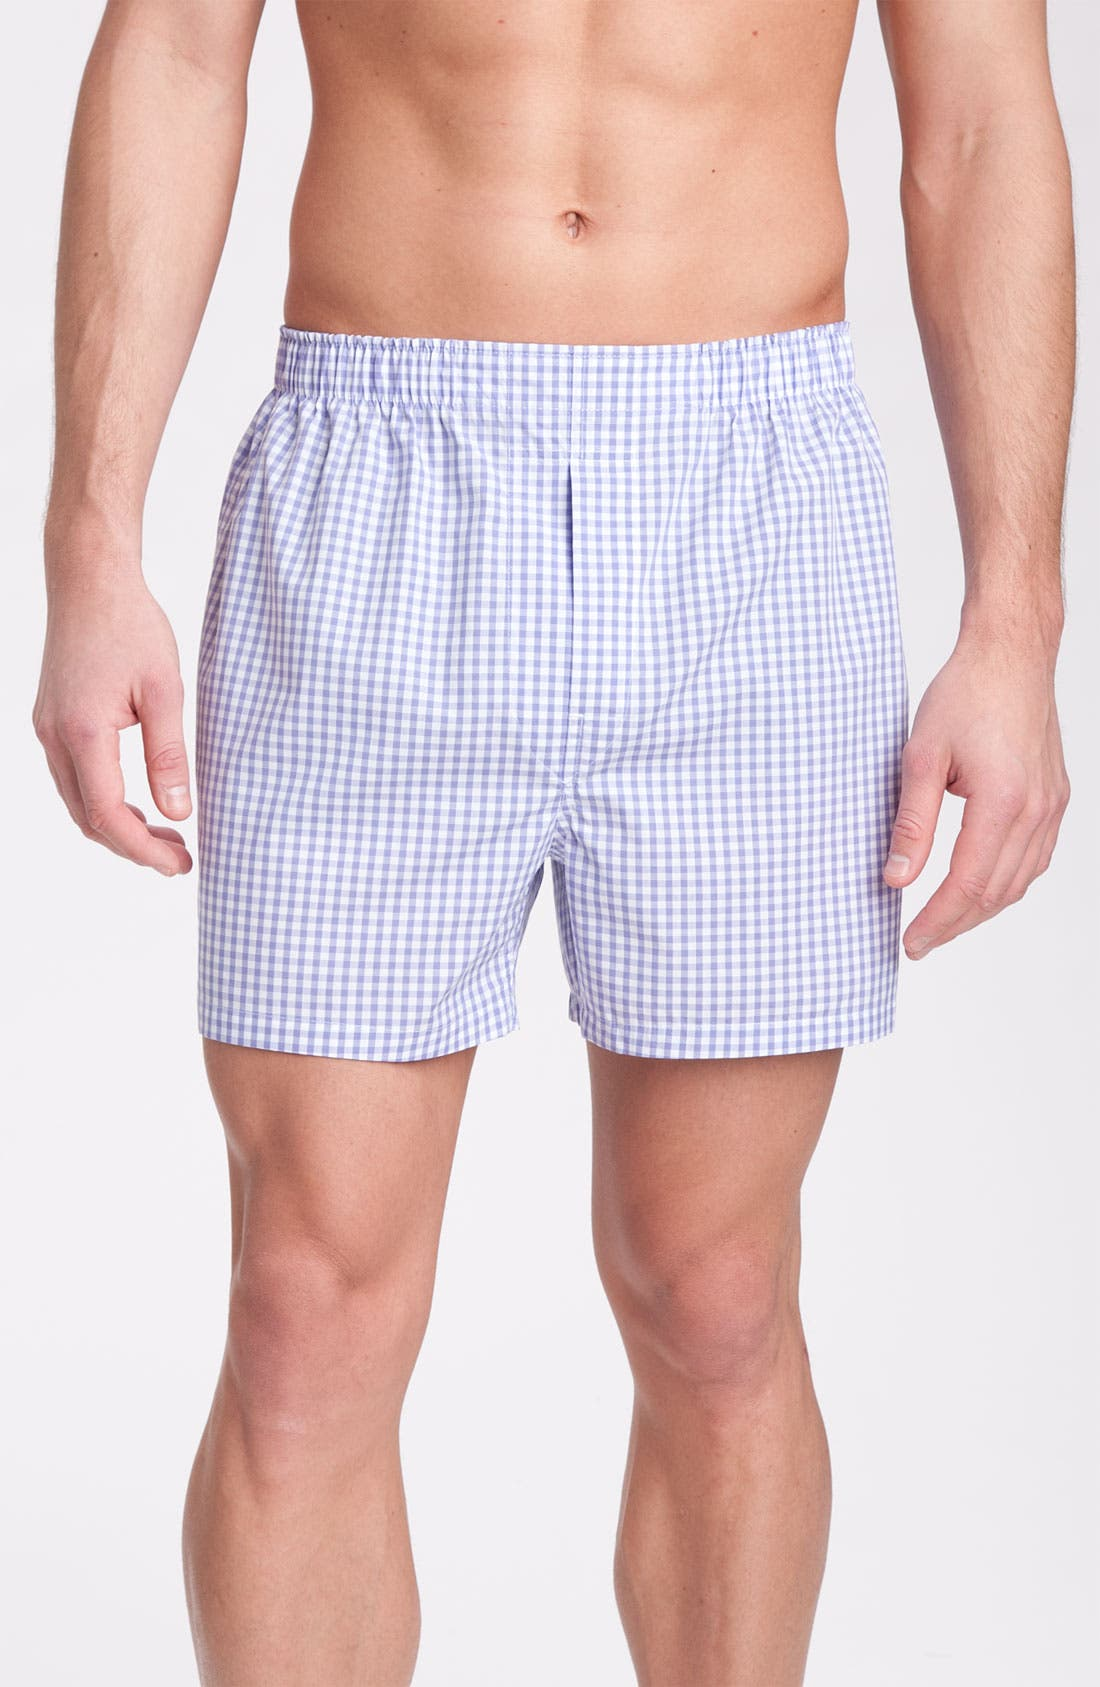 Alternate Image 1 Selected - Brooks Brothers Gingham Boxers